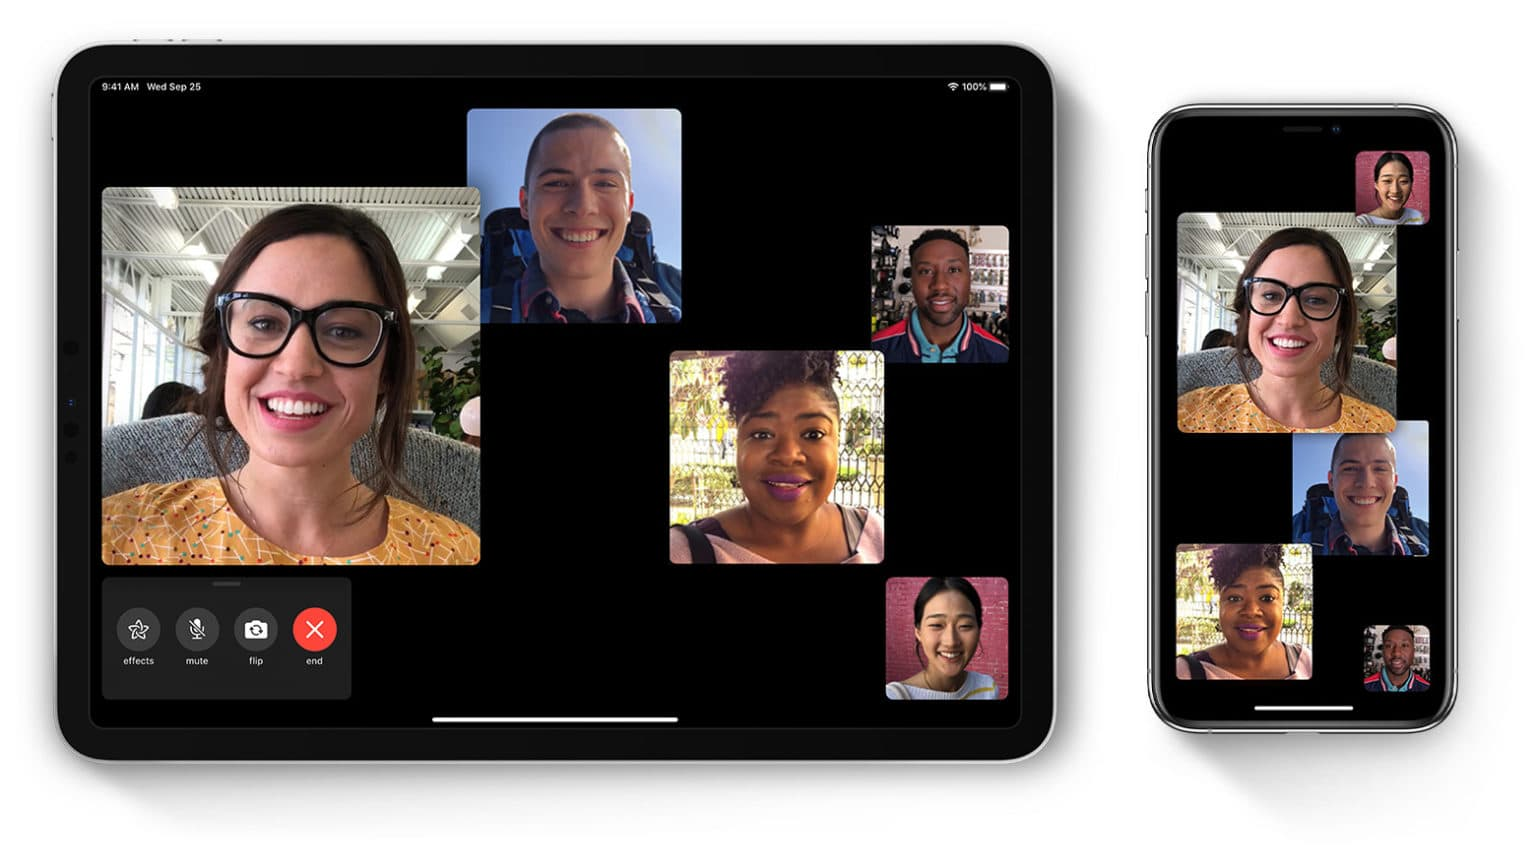 Group FaceTime is a great way to stay in touch with your family and friends during coronavirus quarantine.